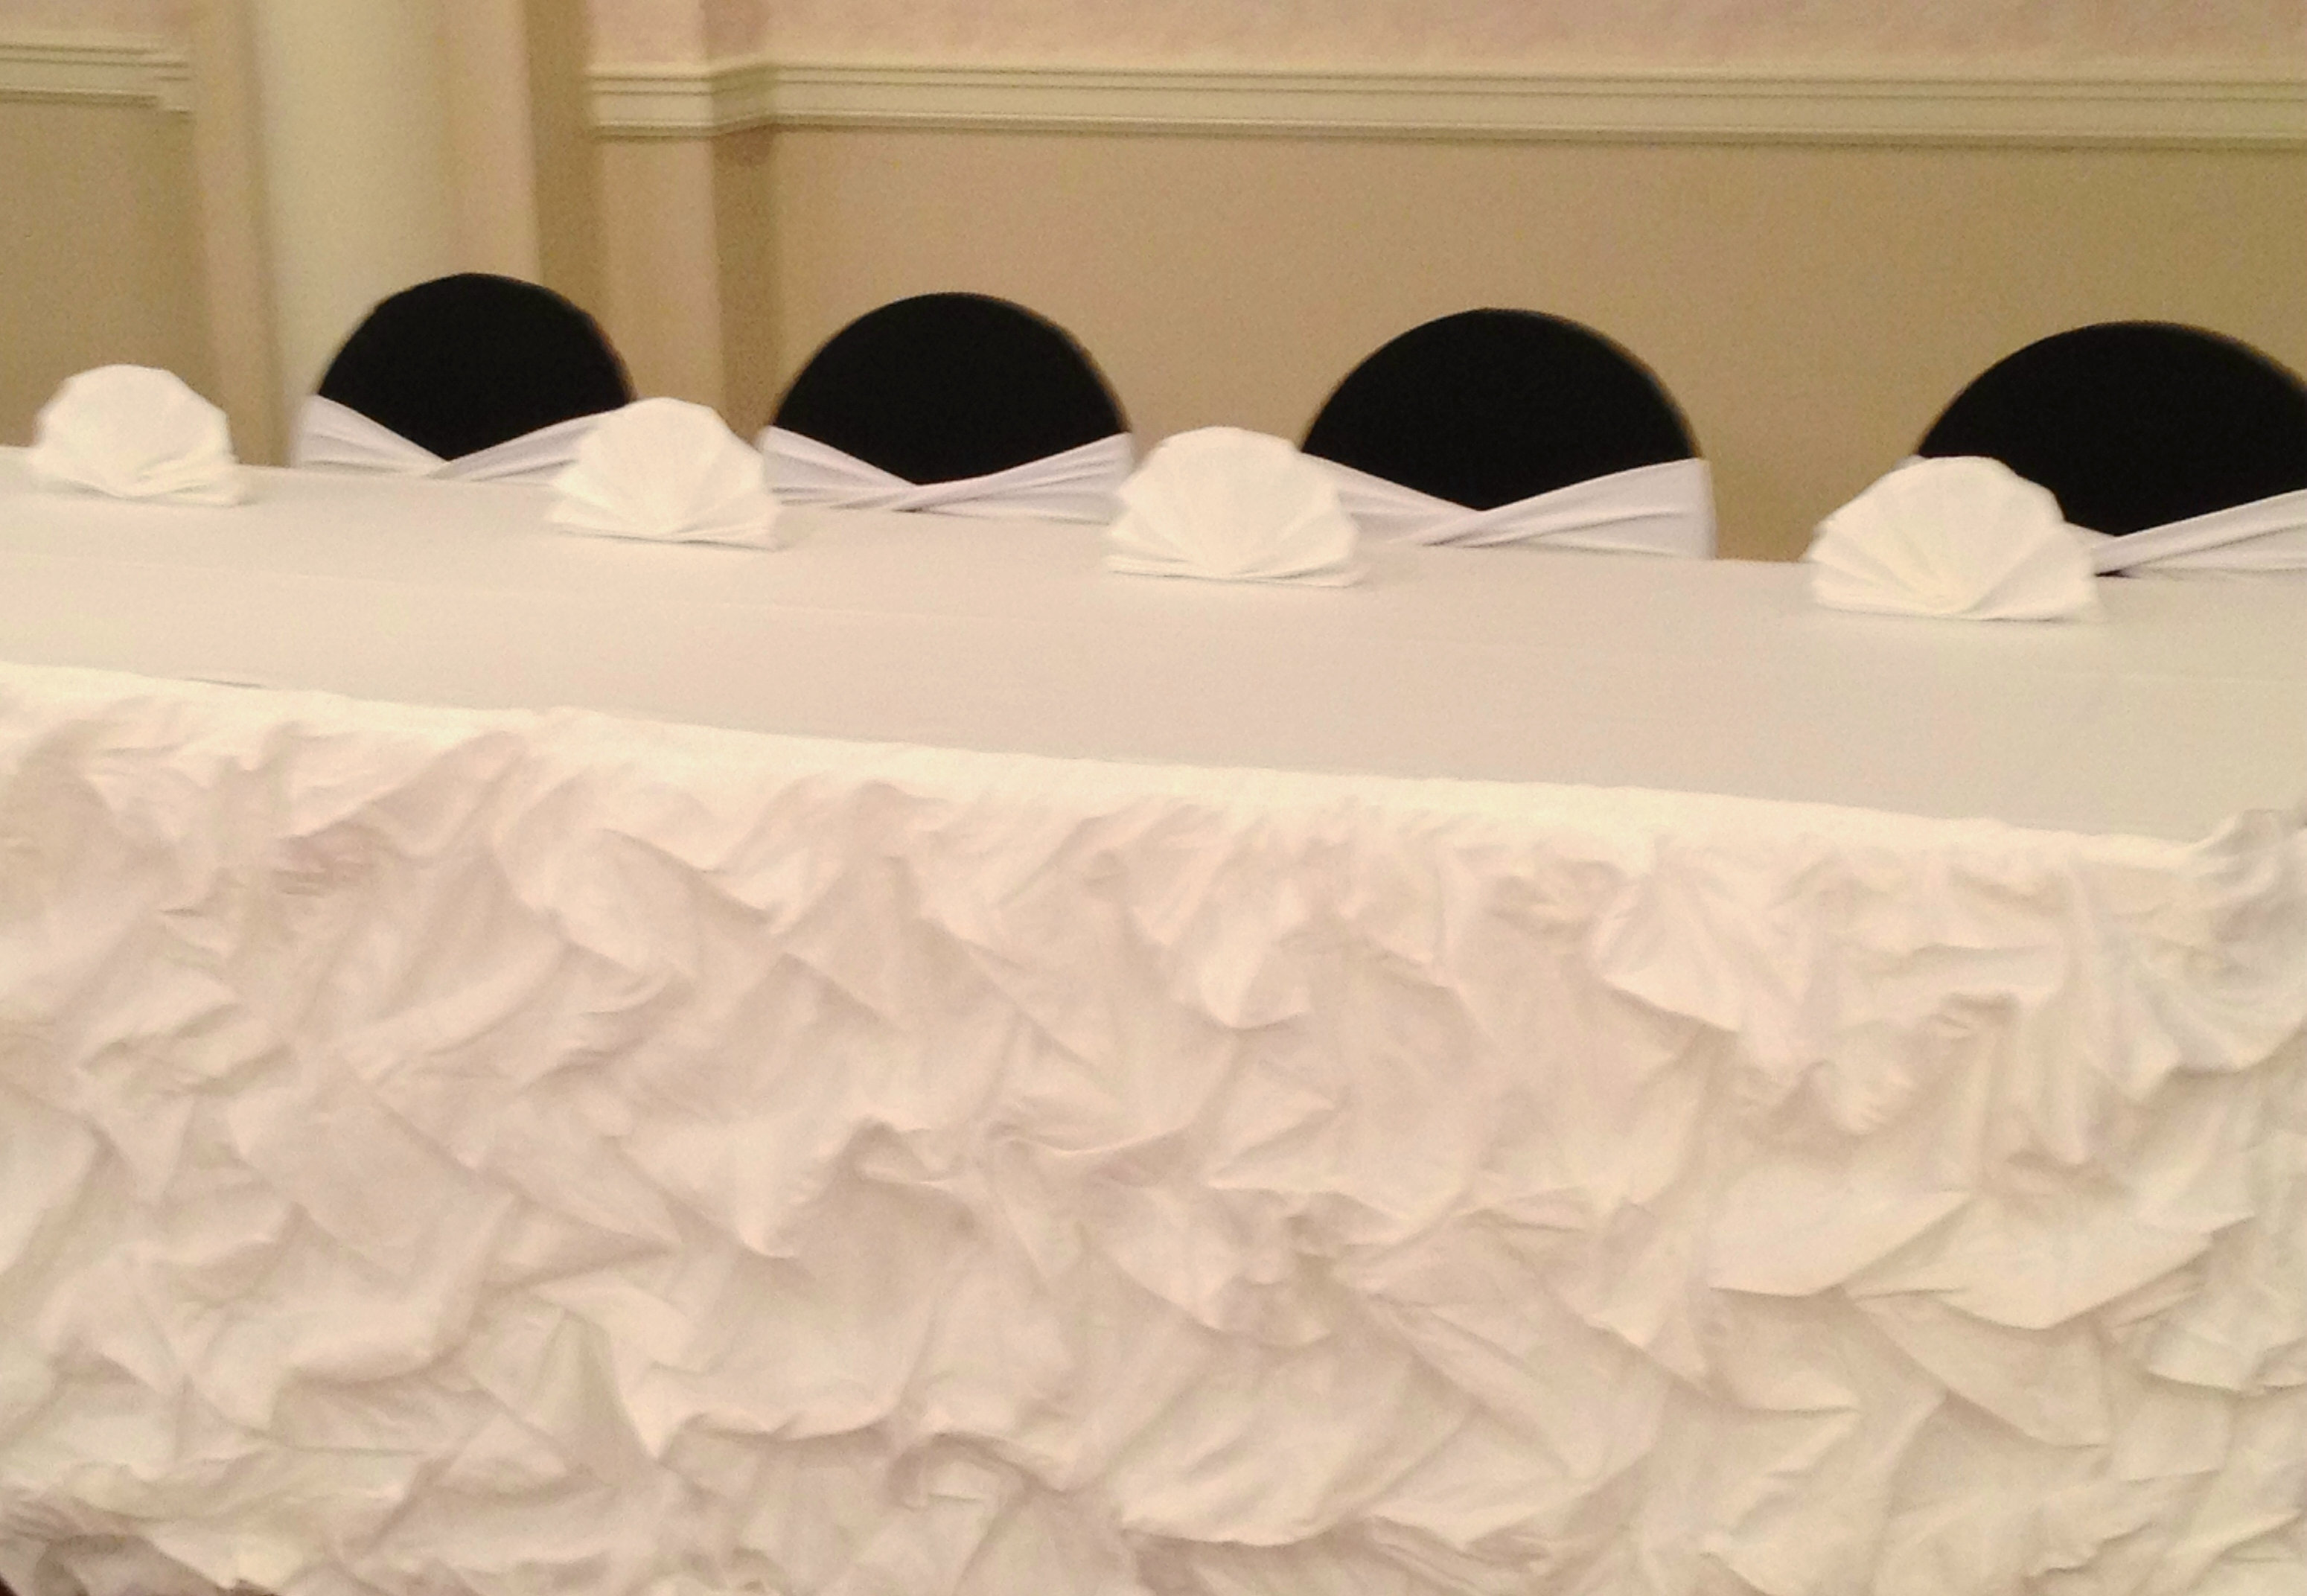 chair cover rentals boston ma wheelchair yoga pdf distinctive decor for all your parties and events